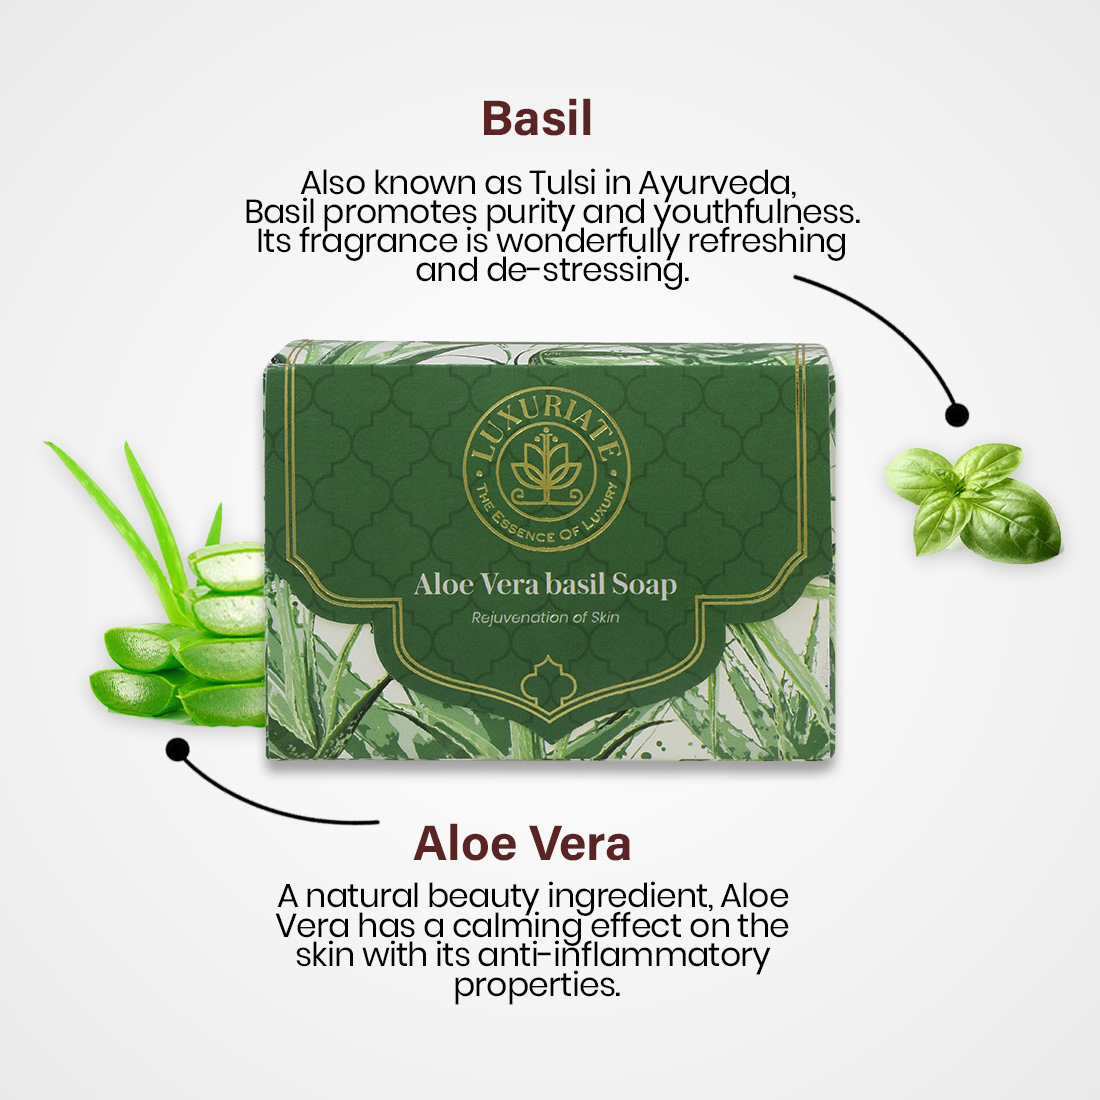 LUXURIATE Naturally Refreshing Aloe Vera and basil Soaps for Rejuvenatioon of Skin for Men and Women, 125 Gm